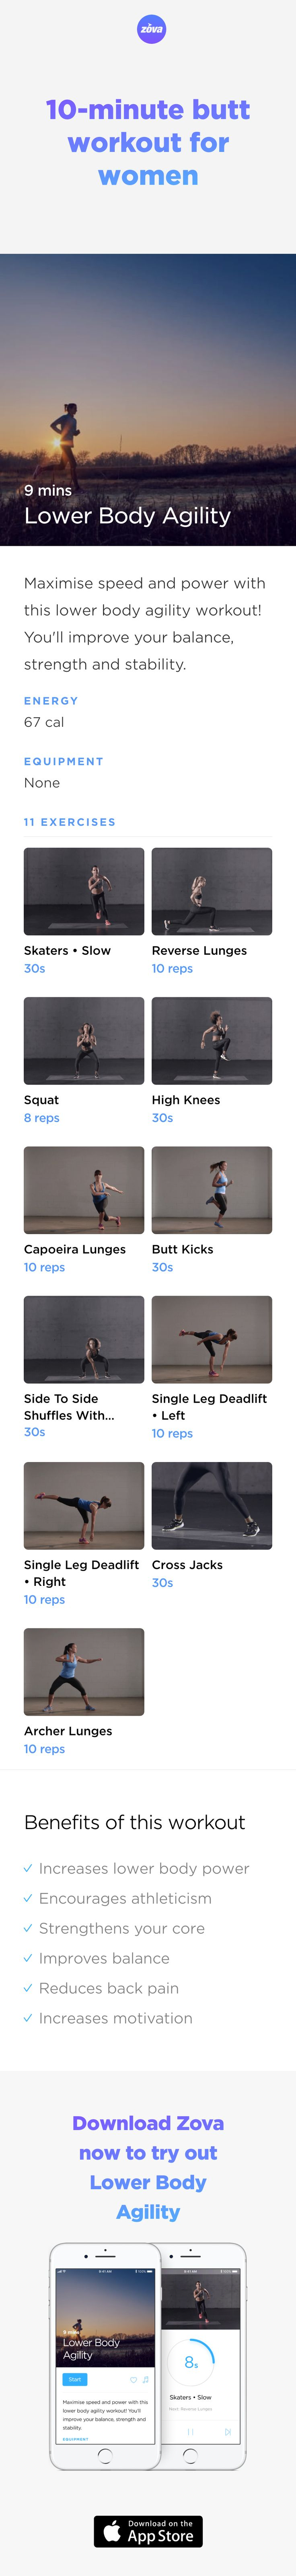 Channel your inner Beyonce and work your booty to the max! Creating a shapely behind is easy with this quick workout that'll lift your glutes for a rounder, tighter bottom. The perfect mix of glute exercises simultaneously works your core for better balance, reduced back pain and improved agility. #HIIT #workout #fitness #butt #booty